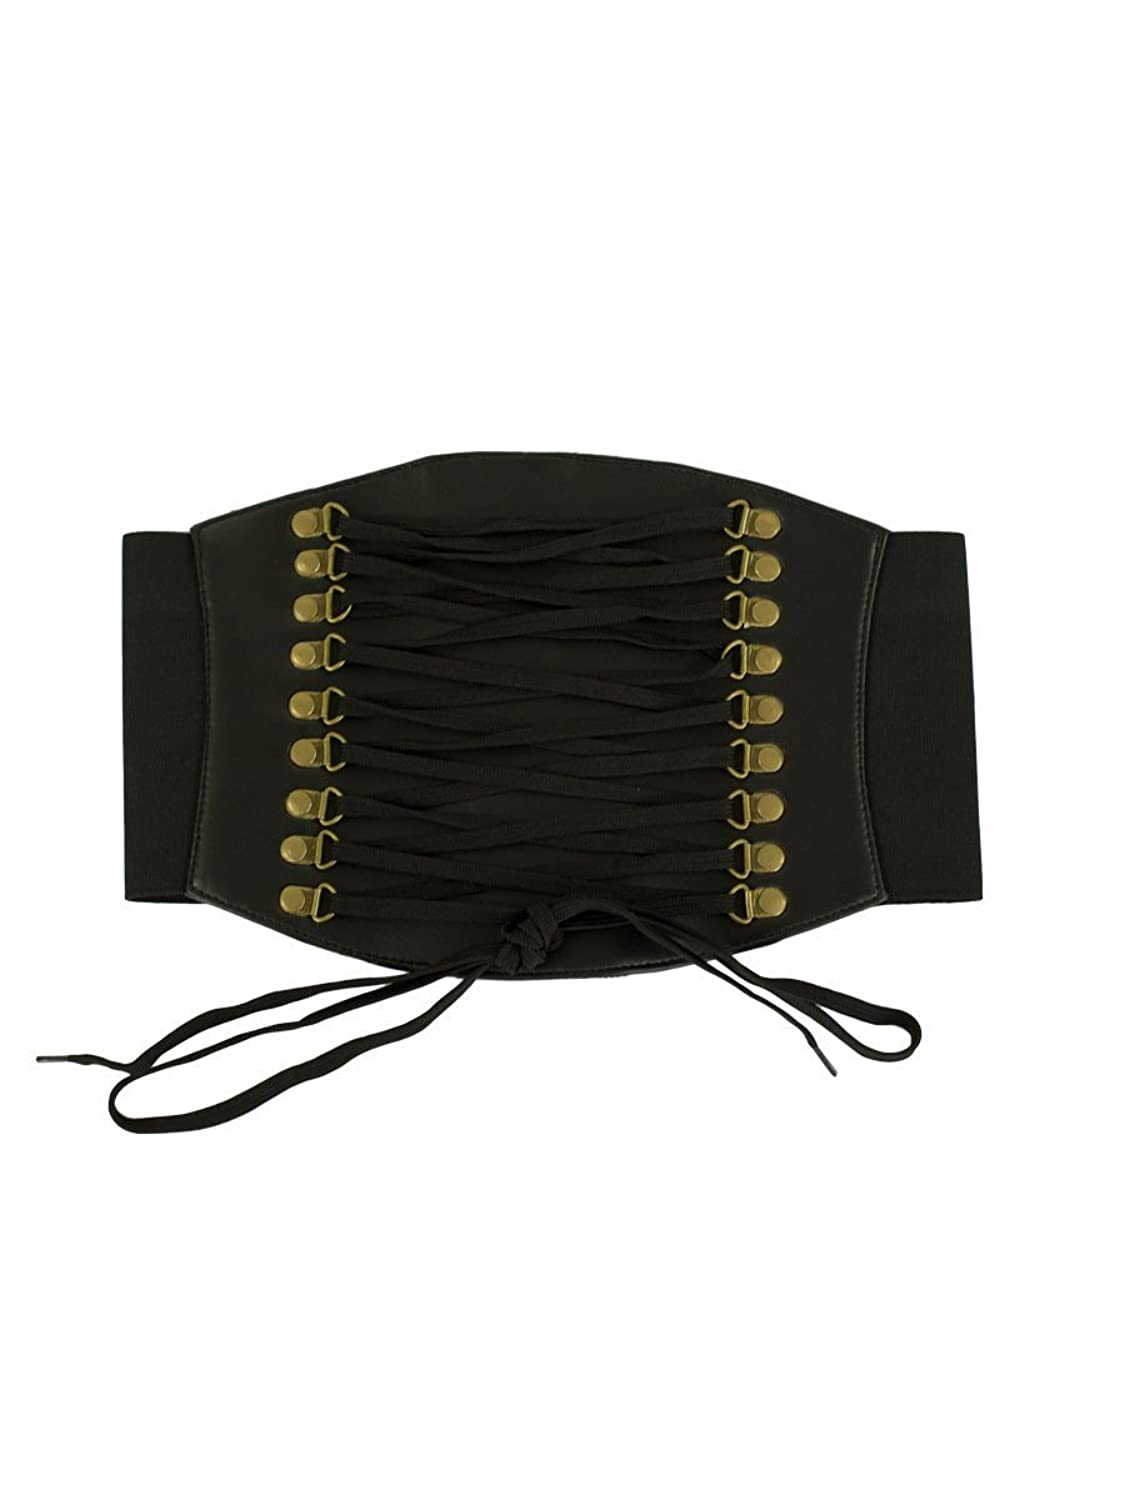 Steampunk Corsets and Belts Orchard Corset Faux Leather Corset Belt CB-915 $24.99 AT vintagedancer.com